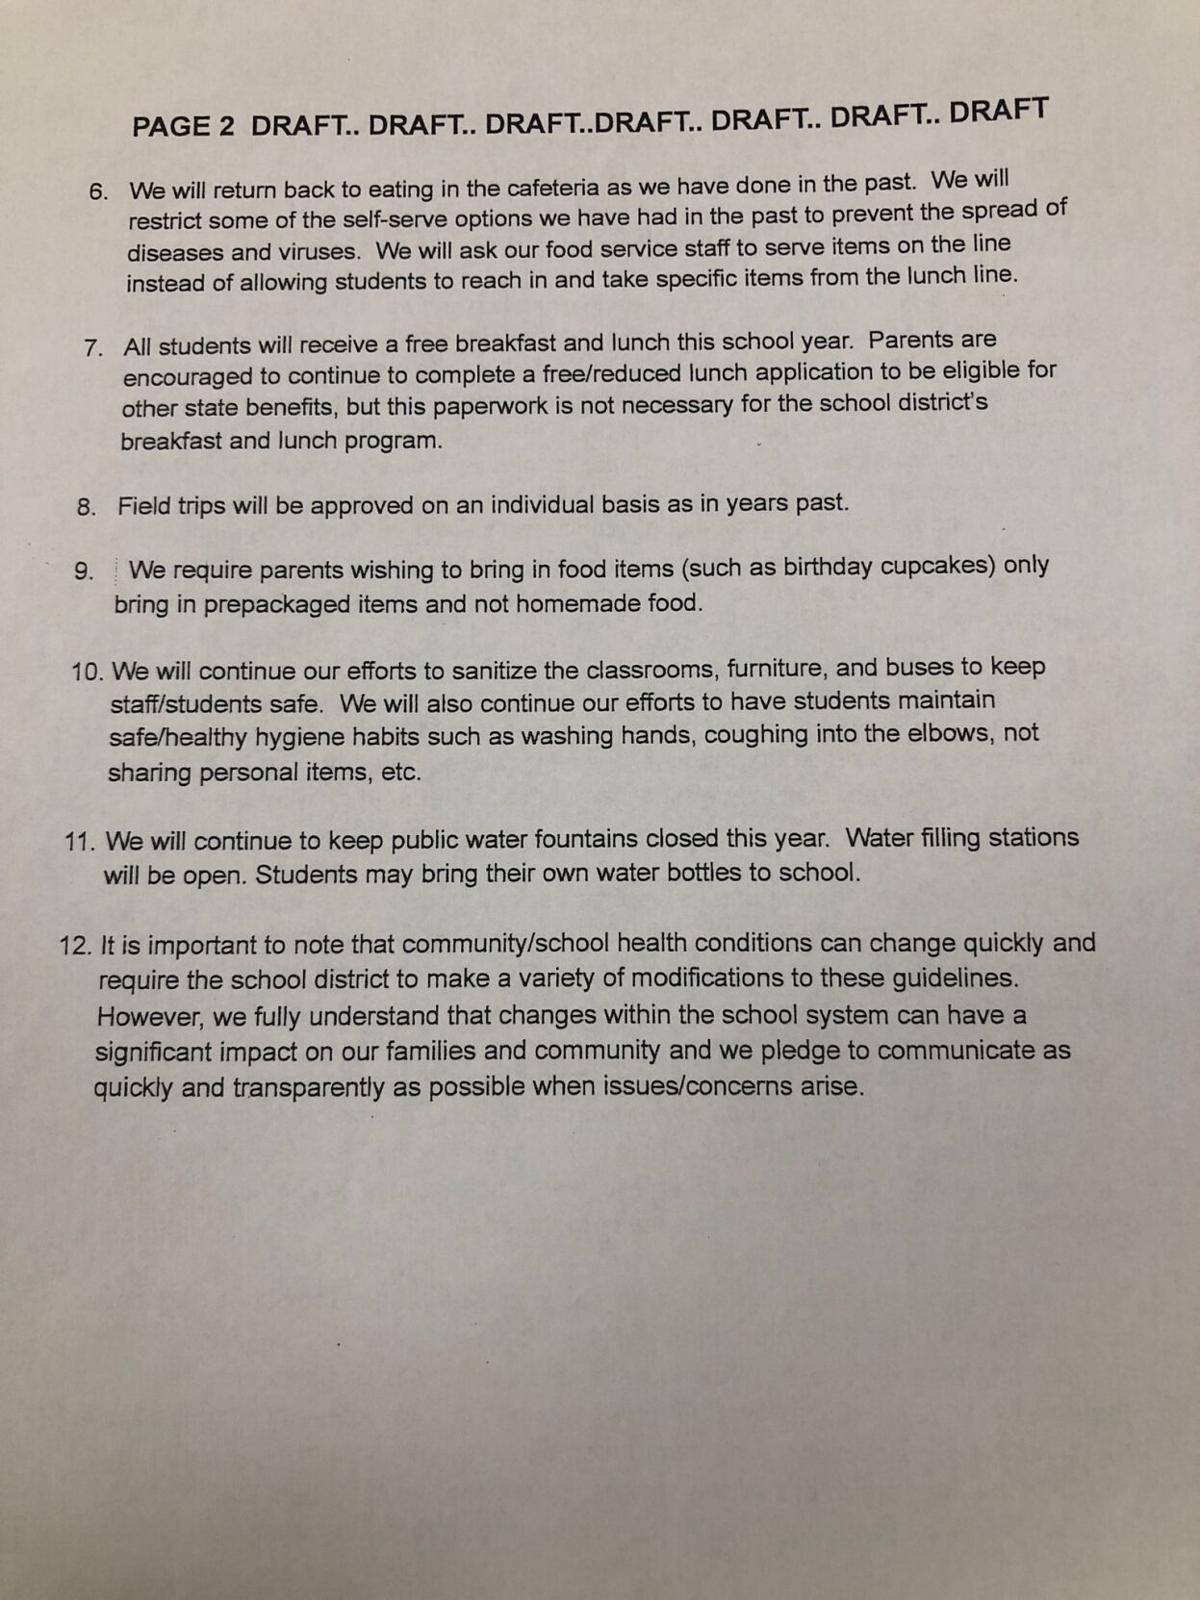 COVID-19-related document approved by the Sullivan County school board July 20, 2021